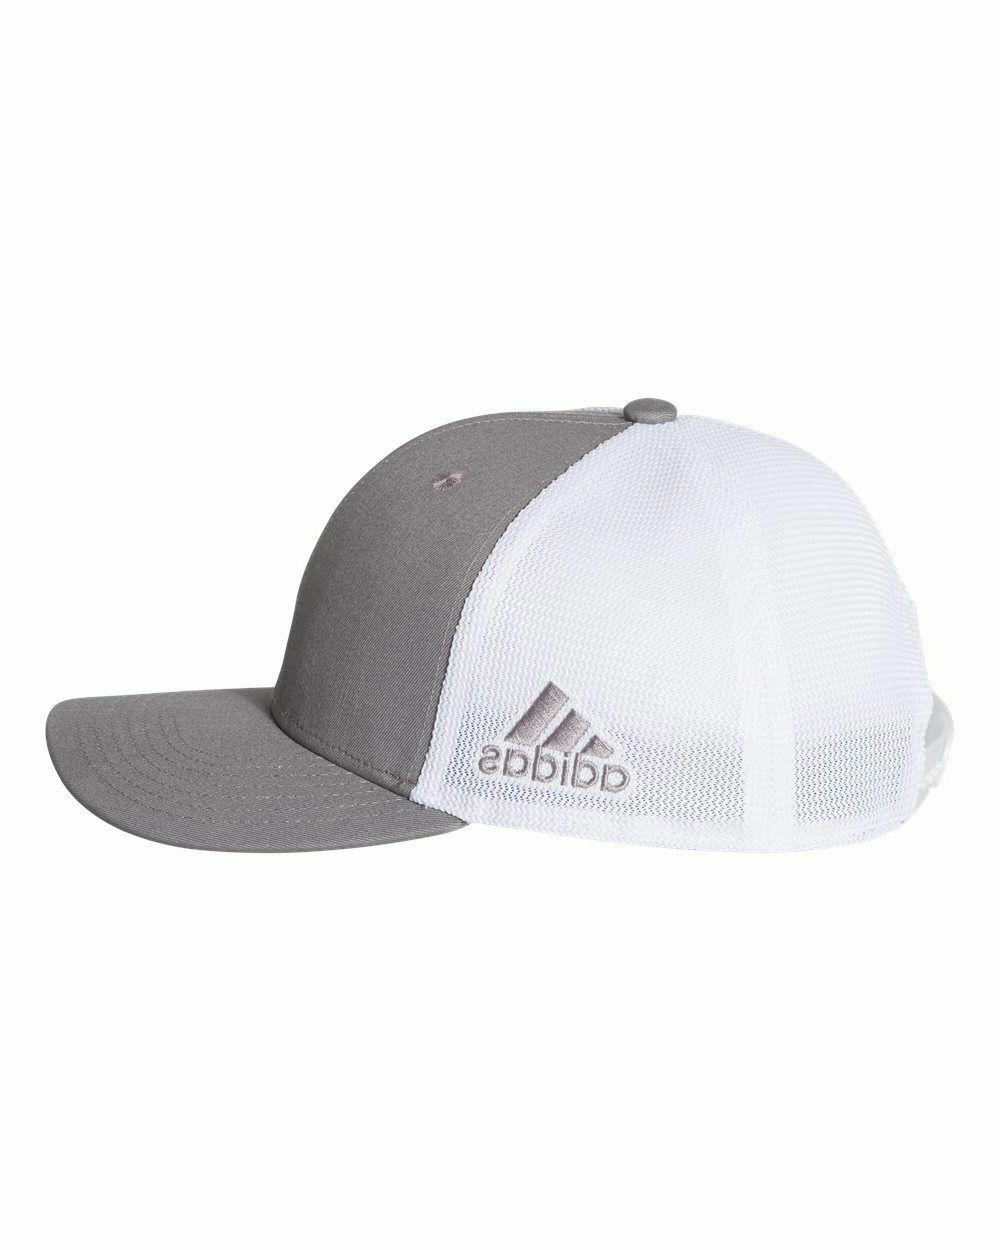 ADIDAS Men's Adjustable Mesh Back Baseball Hat,